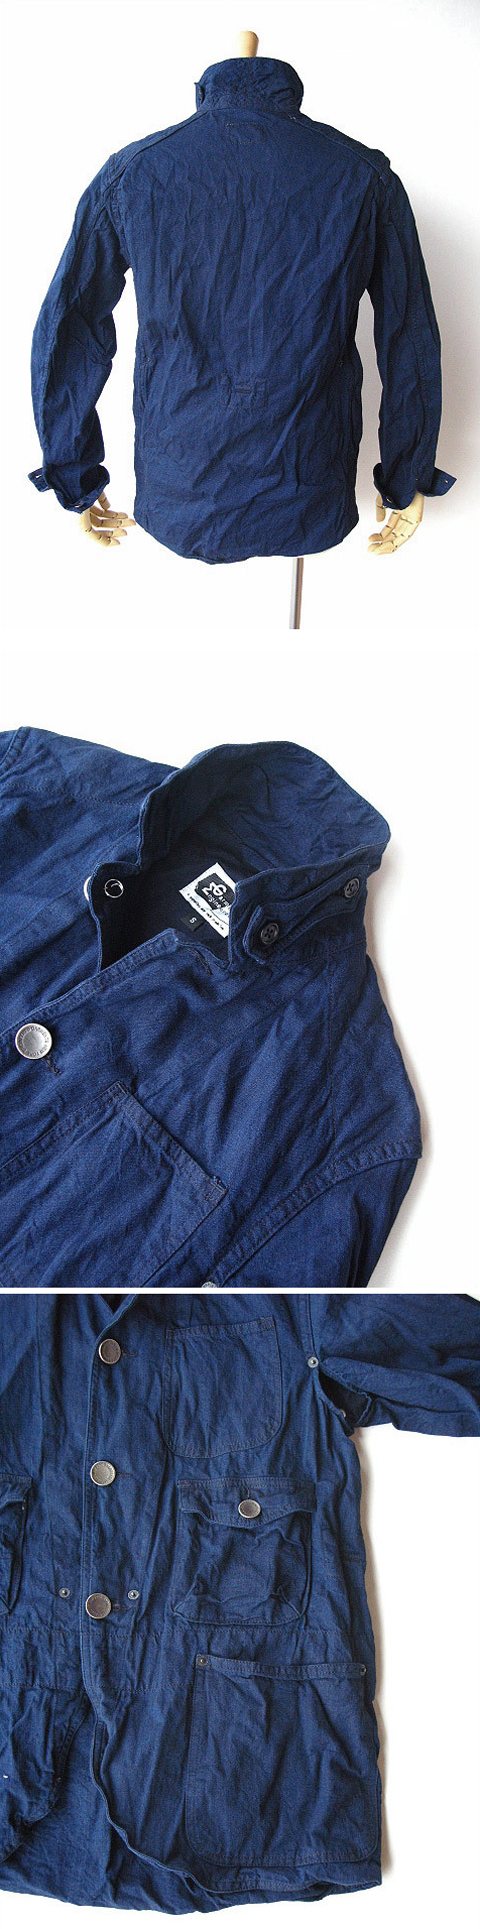 Engineered Garments Highland Jacket 03